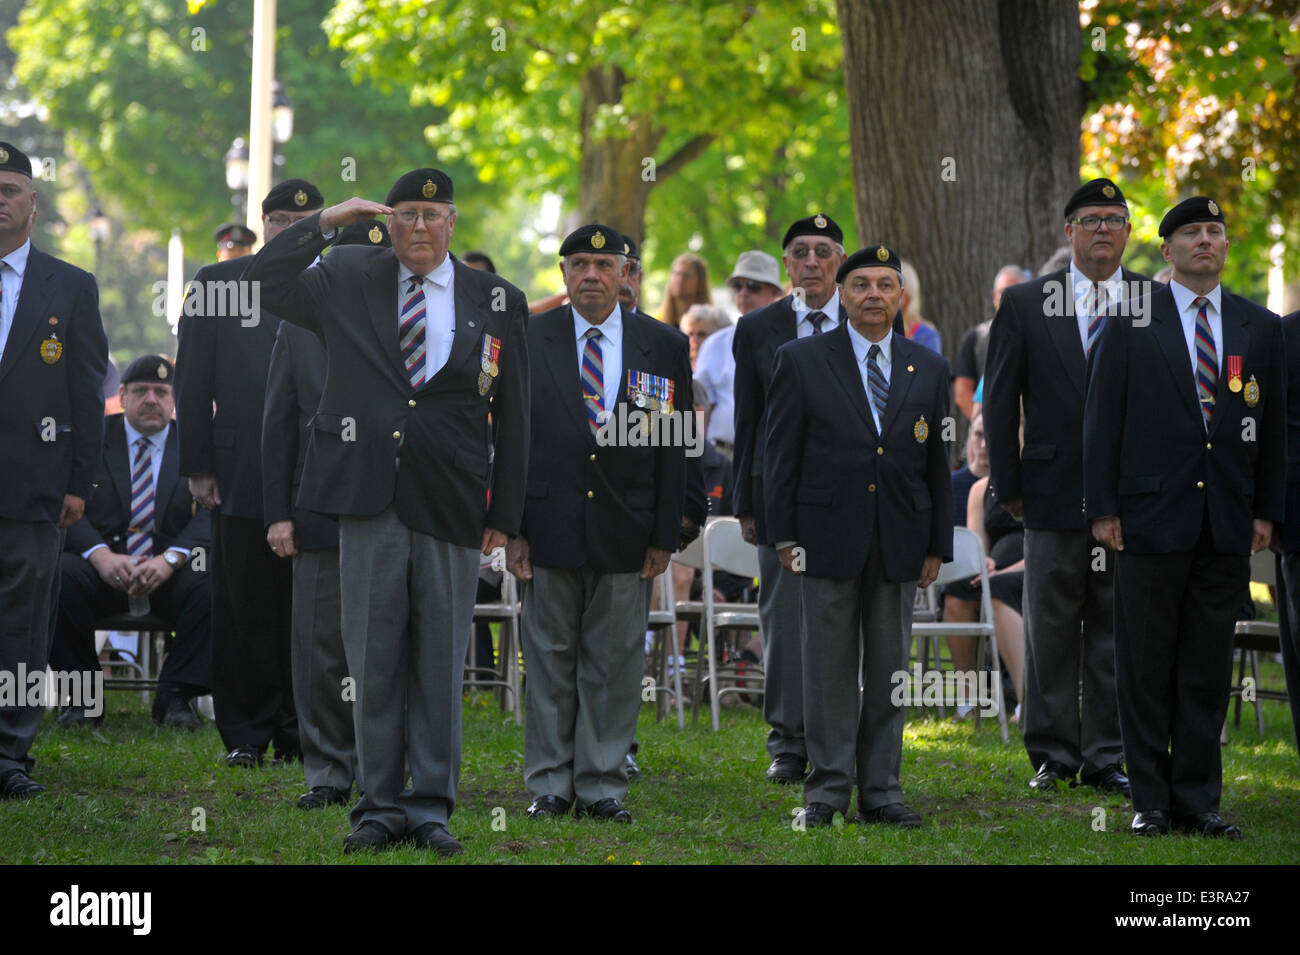 Politicians, members of  the public, veterans and serving military personnel attend a ceremony on the 70th anniversary - Stock Image